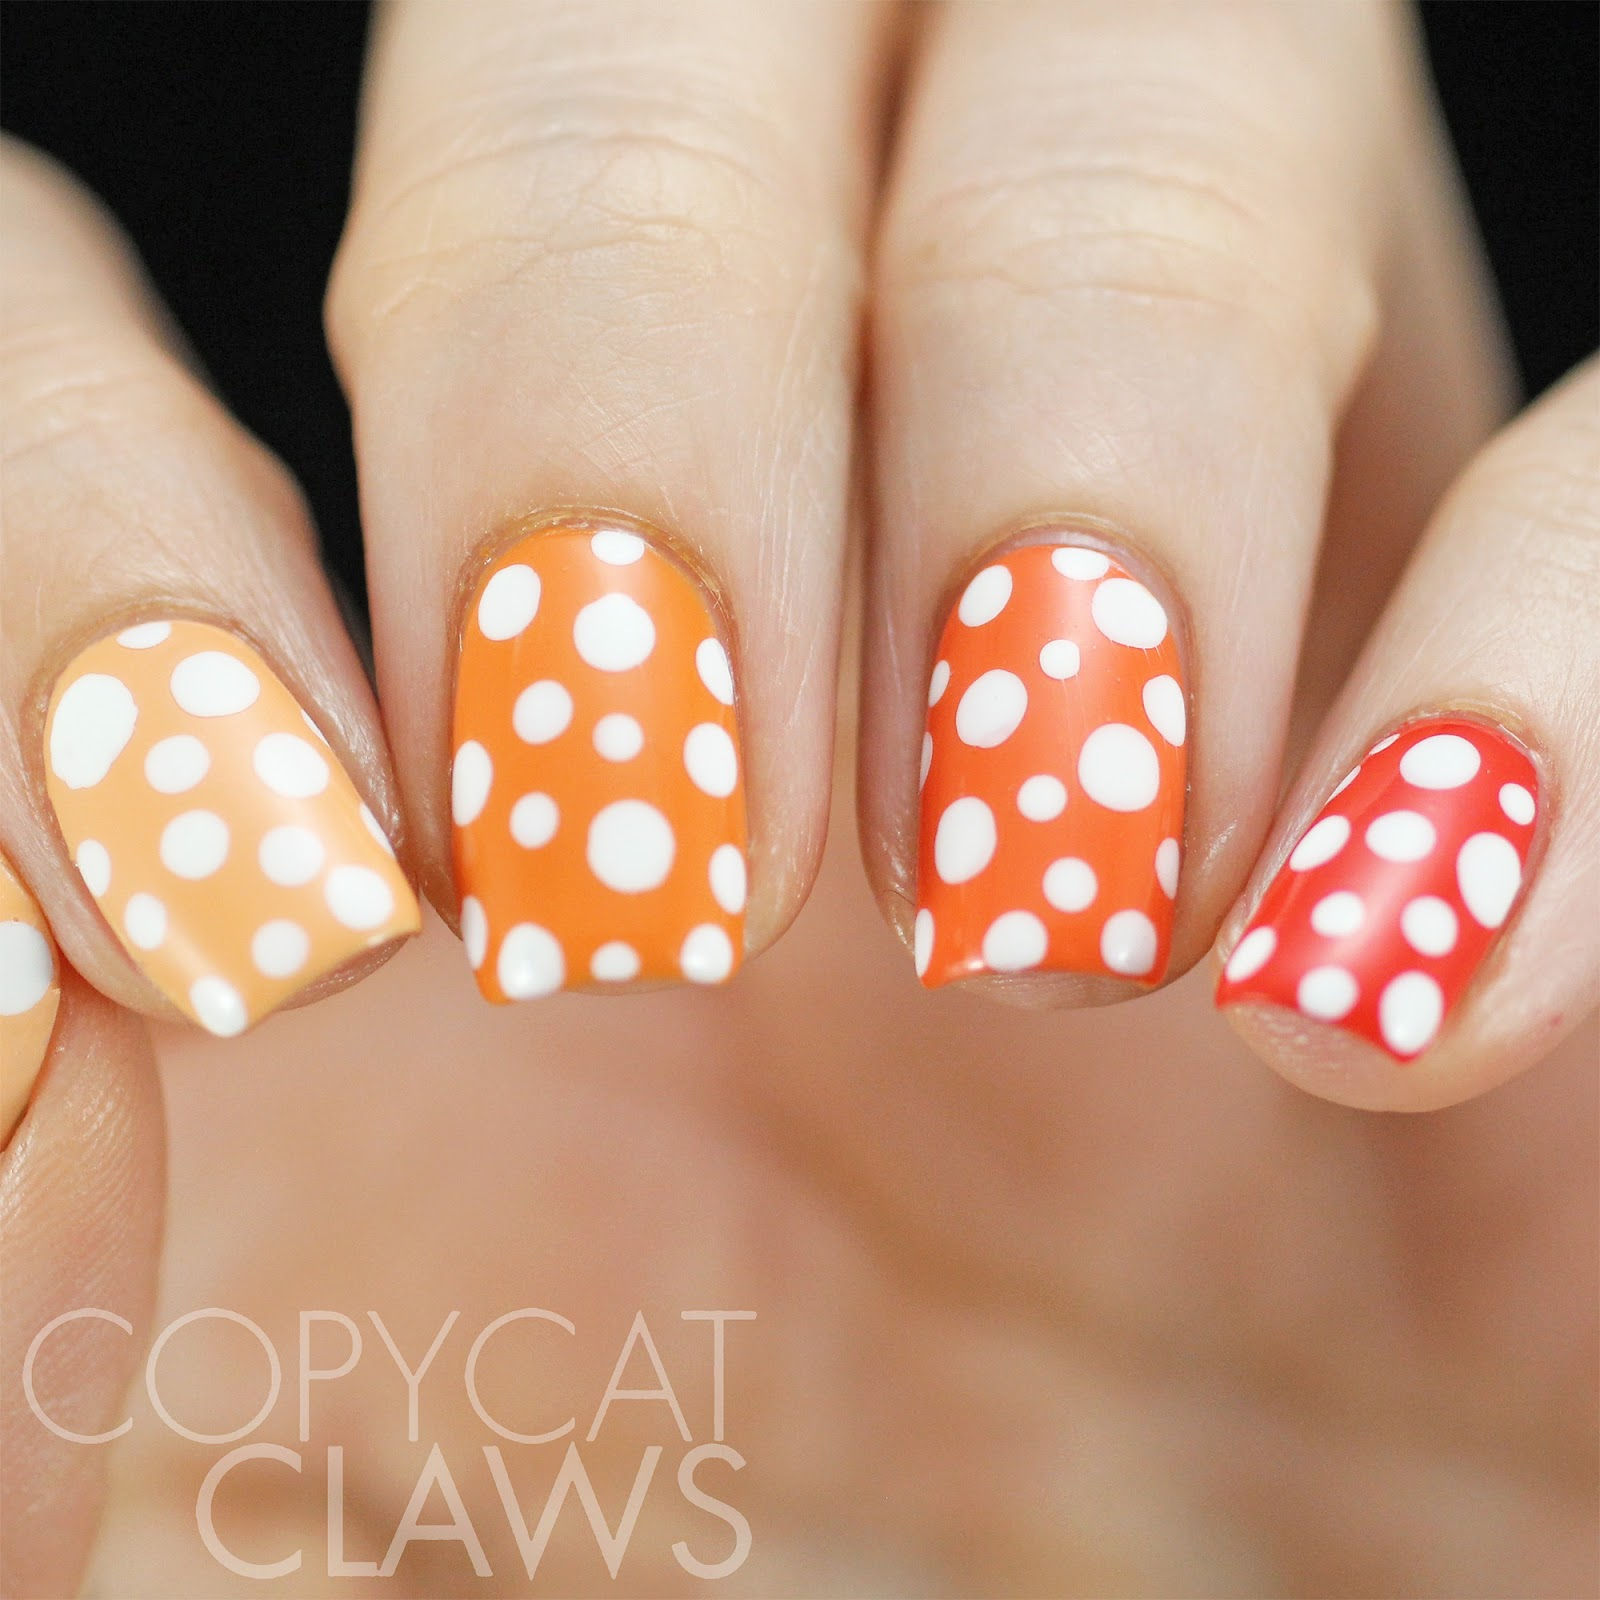 Copycat Claws: 40 Great Nail Art Ideas - 3 Shades of Red/Orange